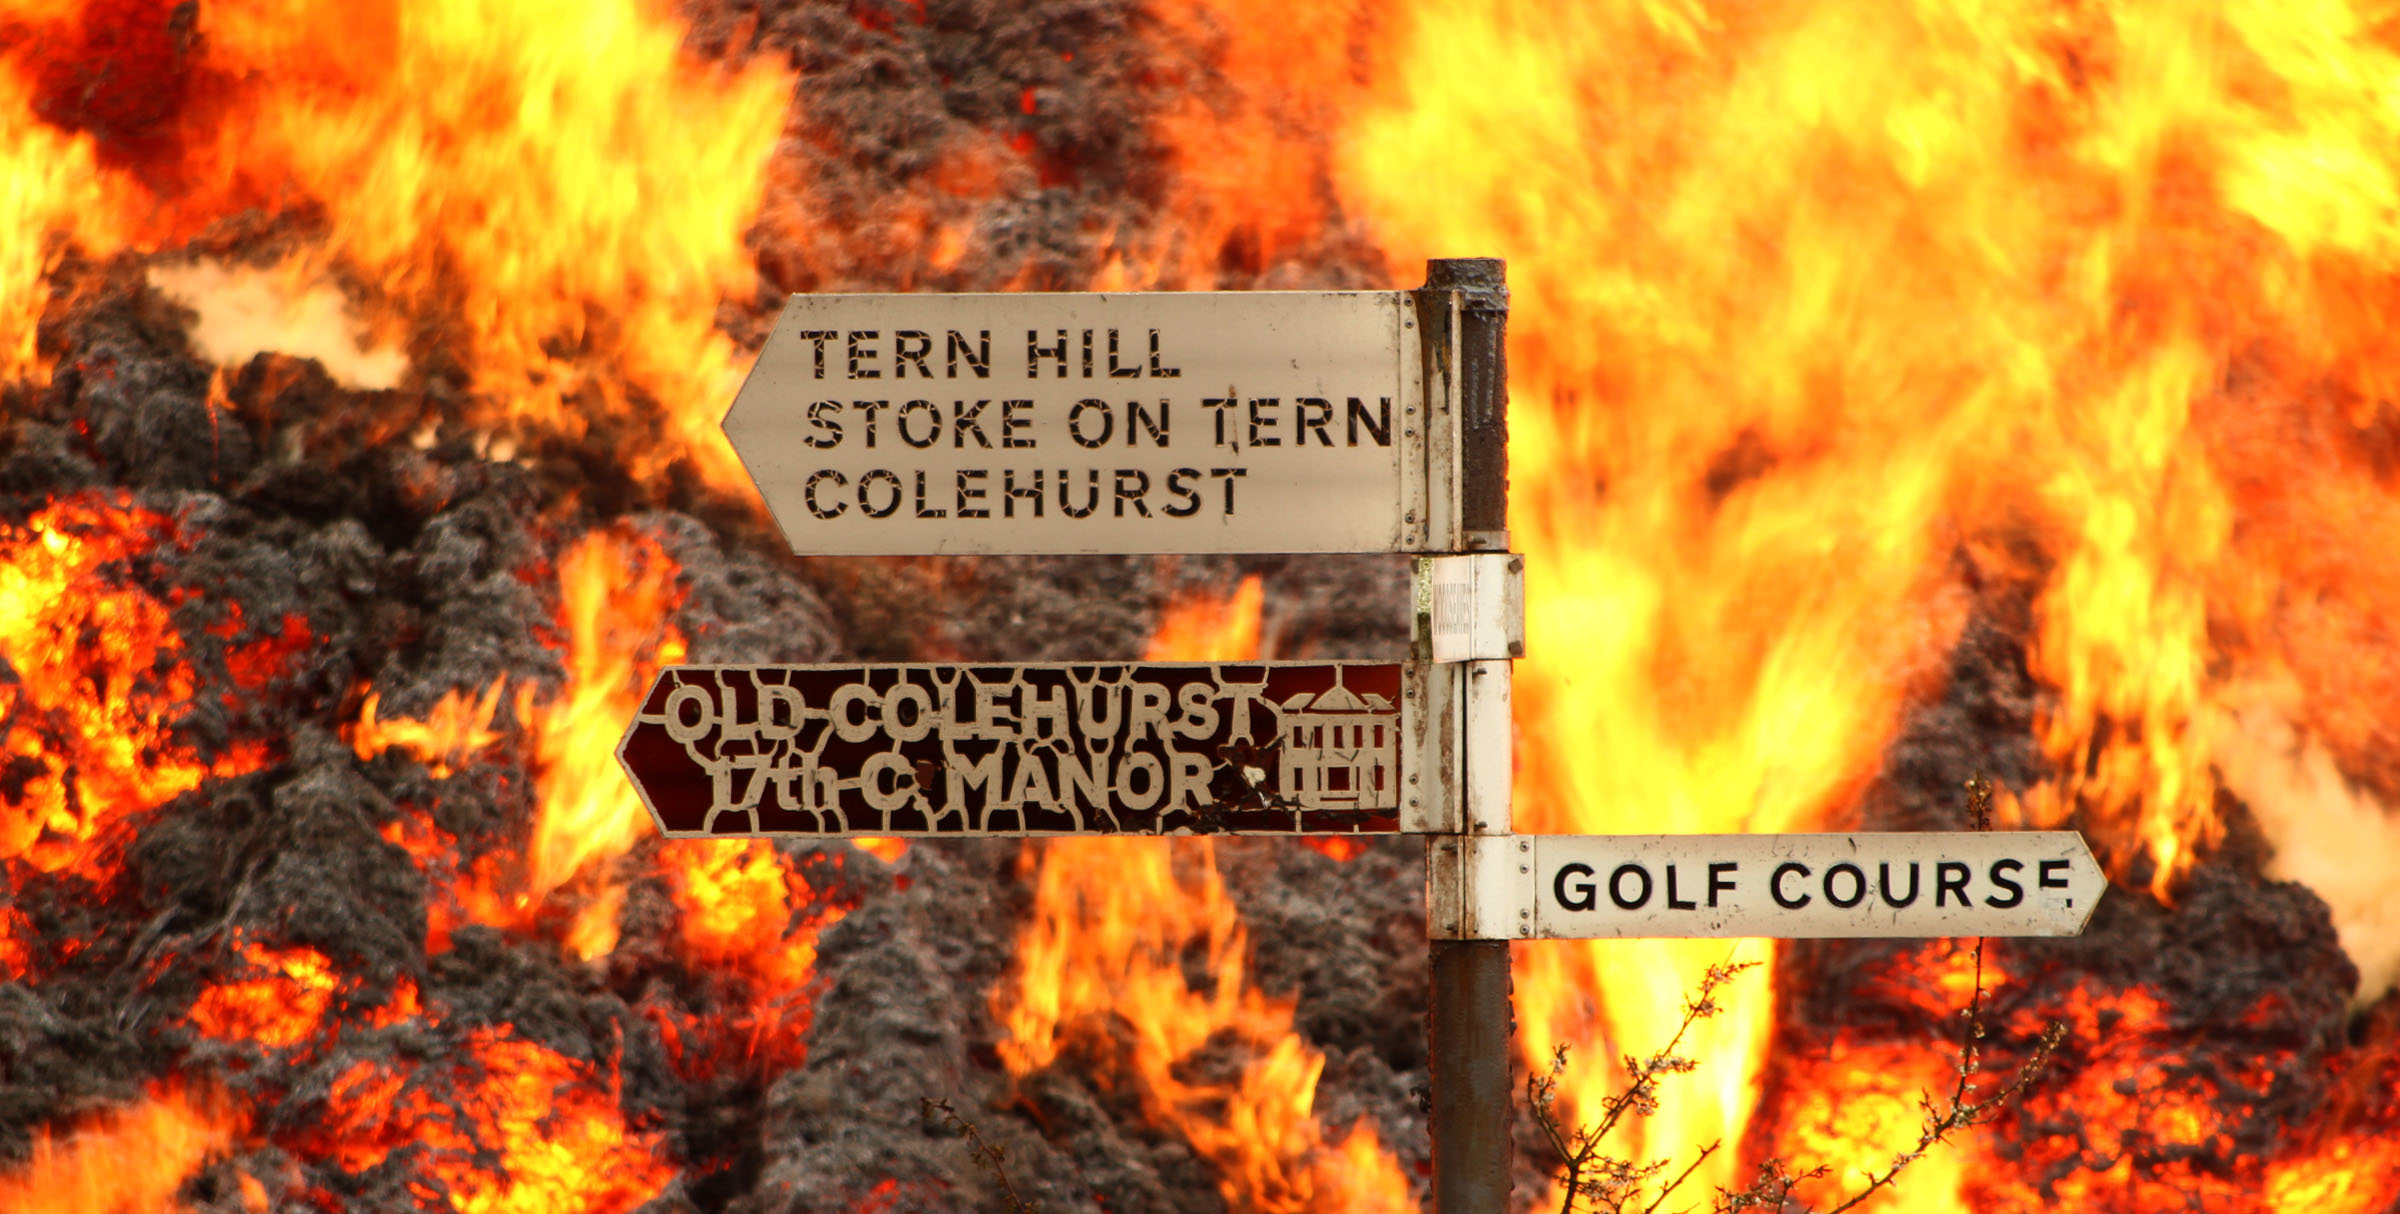 The fierce fire fought by firefighters even melted road signs